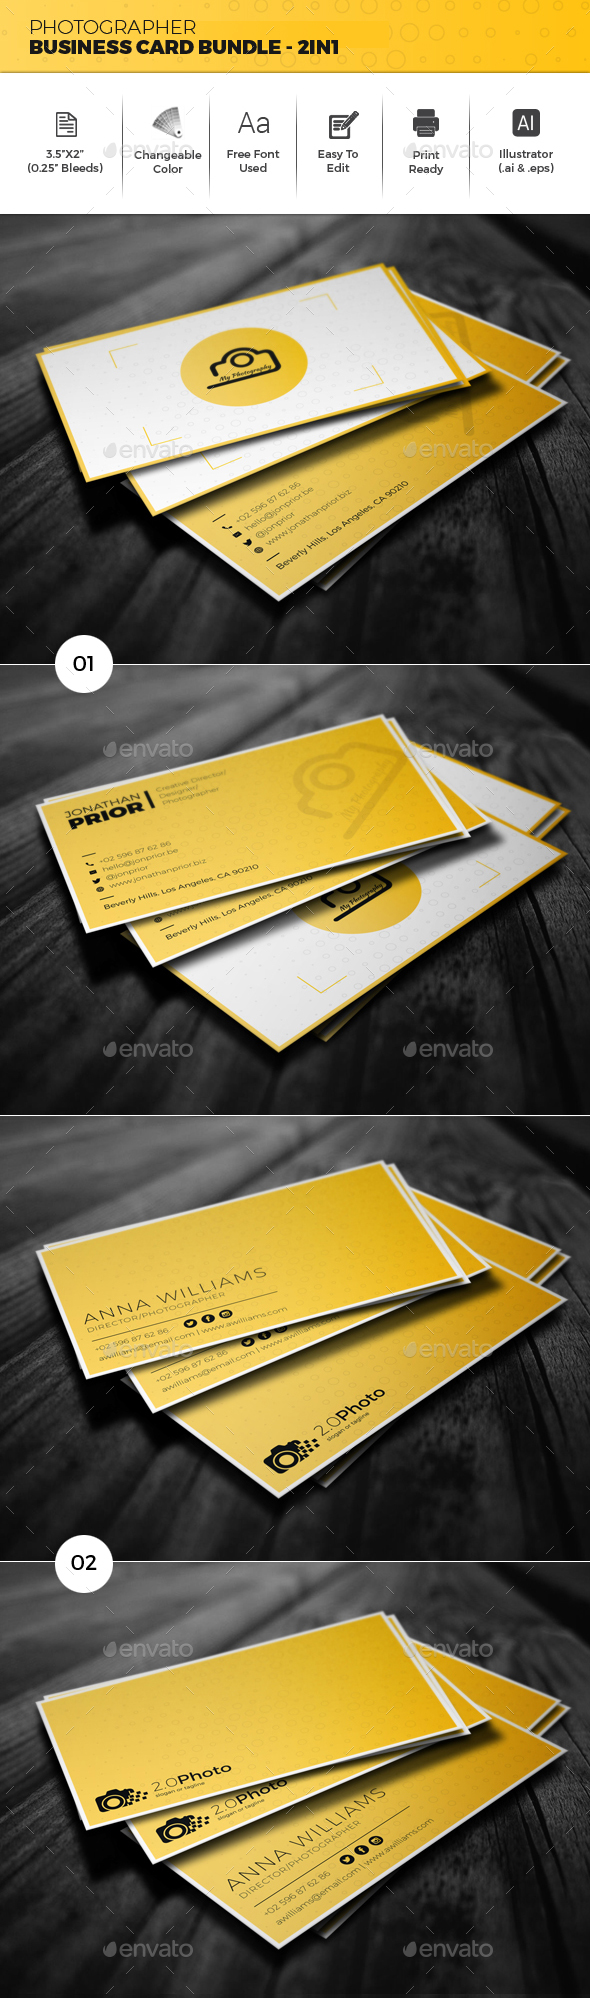 Photographer Business Card Bundle - 2in1 - Creative Business Cards